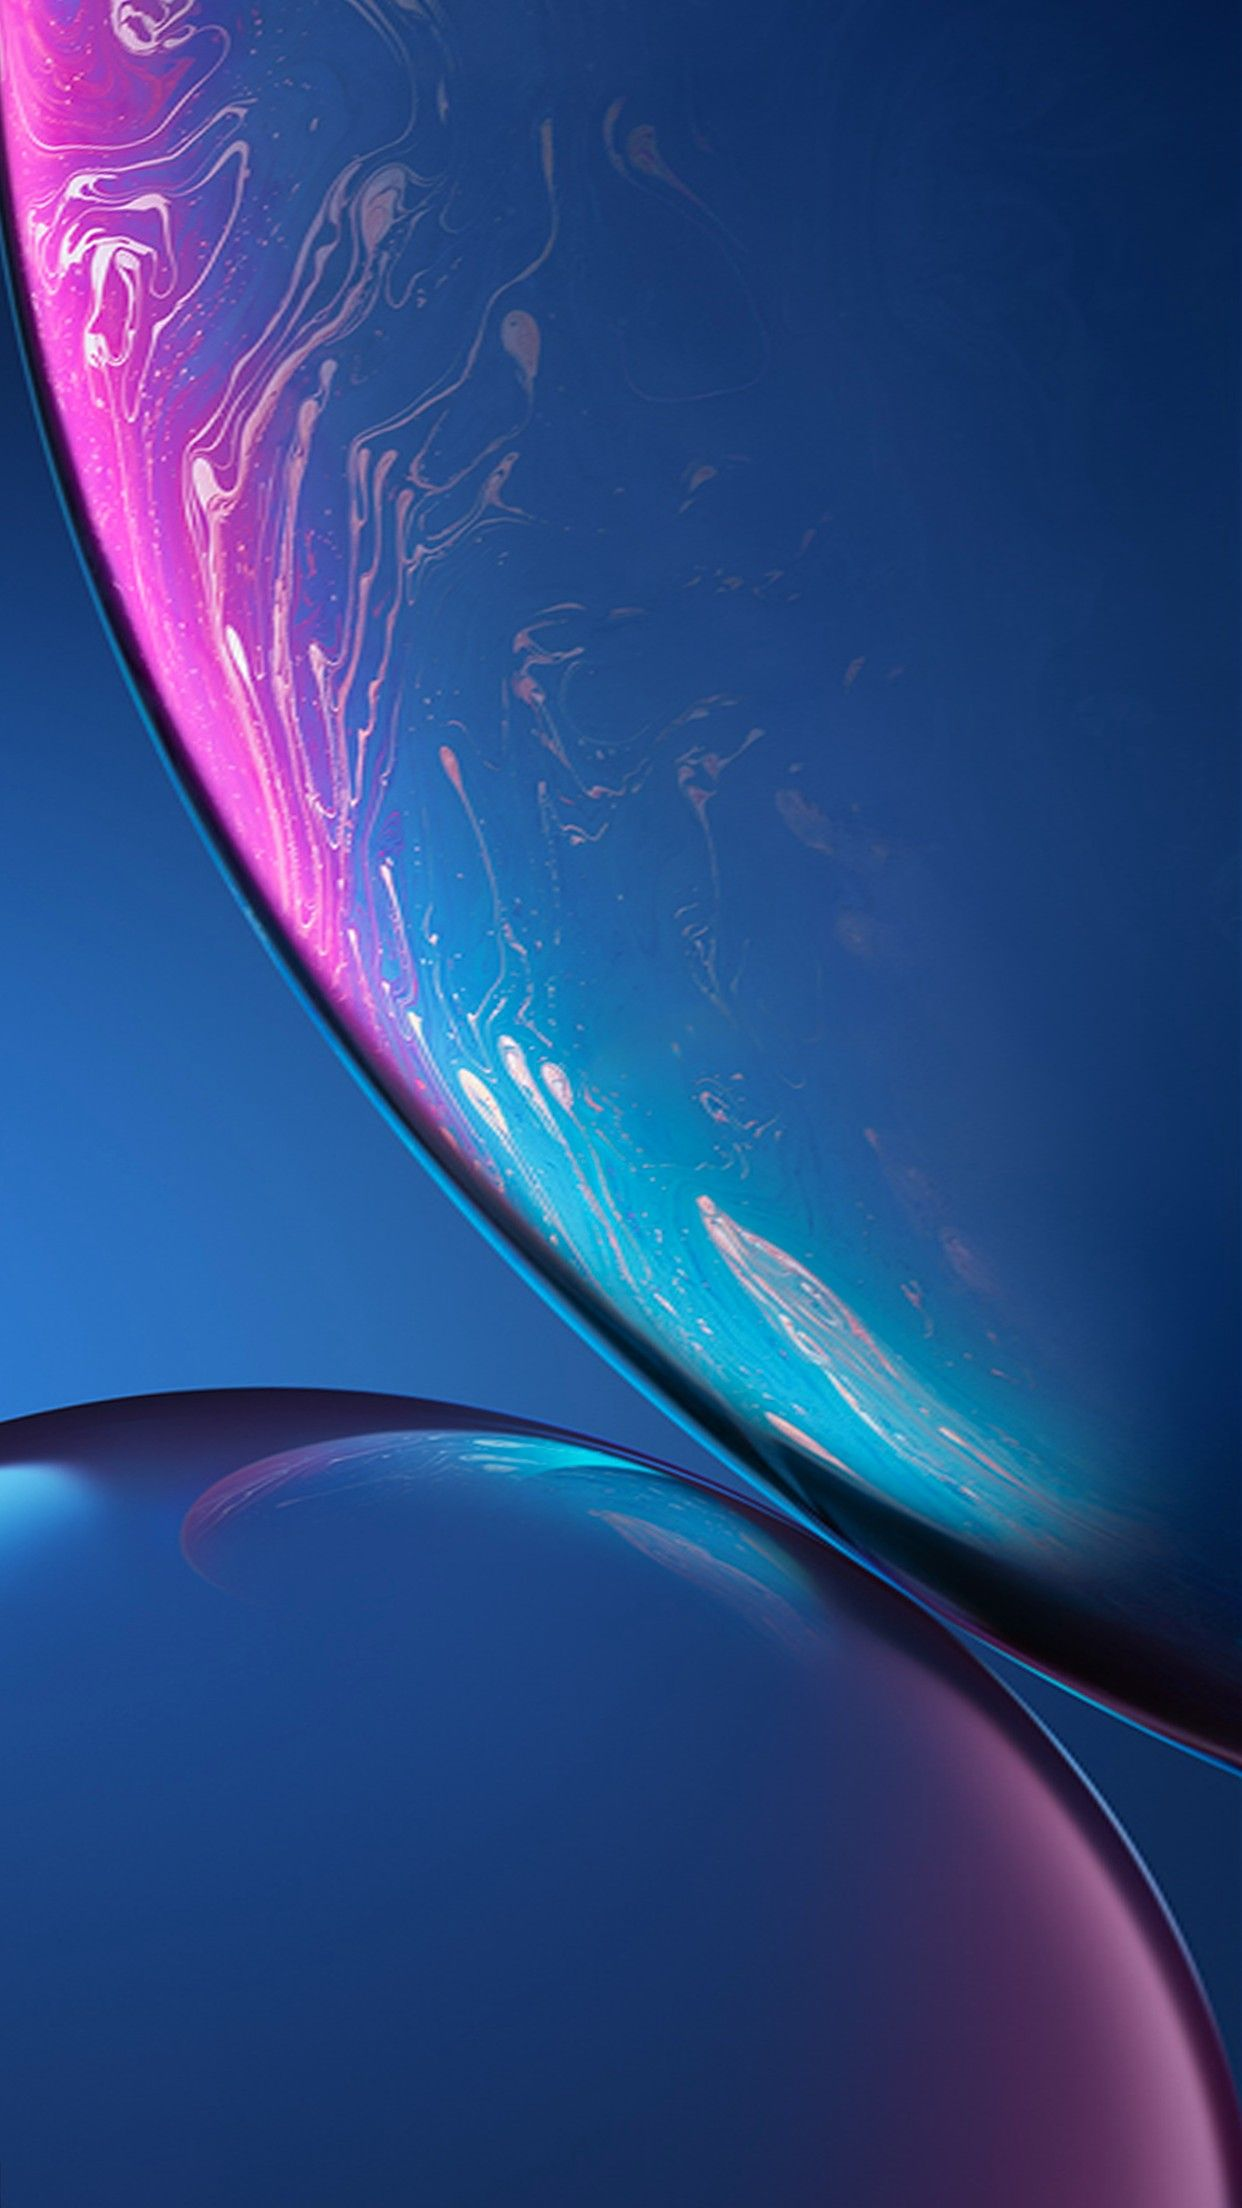 iPhone XR Iphone wallpaper ios, Apple wallpaper iphone